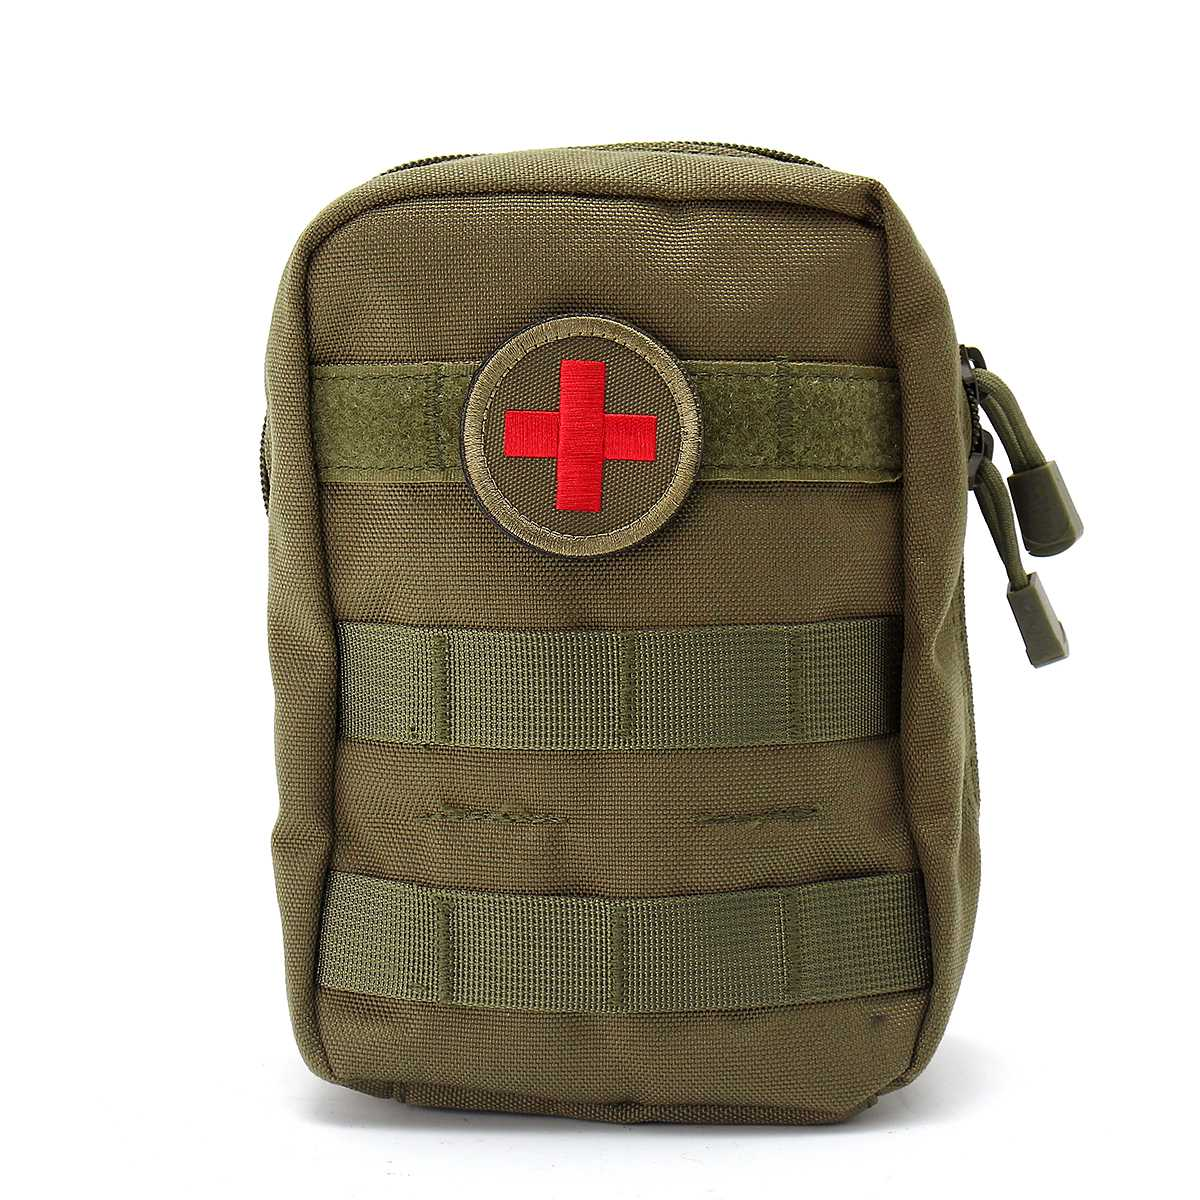 NEW Outdoor Tactical-First-Aid-Kit-Bag-Molle-Medical-Pouch-Outdoor-Travel-Emergenc Emergency Treatment Pack Set empty bag for travel medical kit outdoor emergency kit home first aid kit treatment pack camping mini survival bag